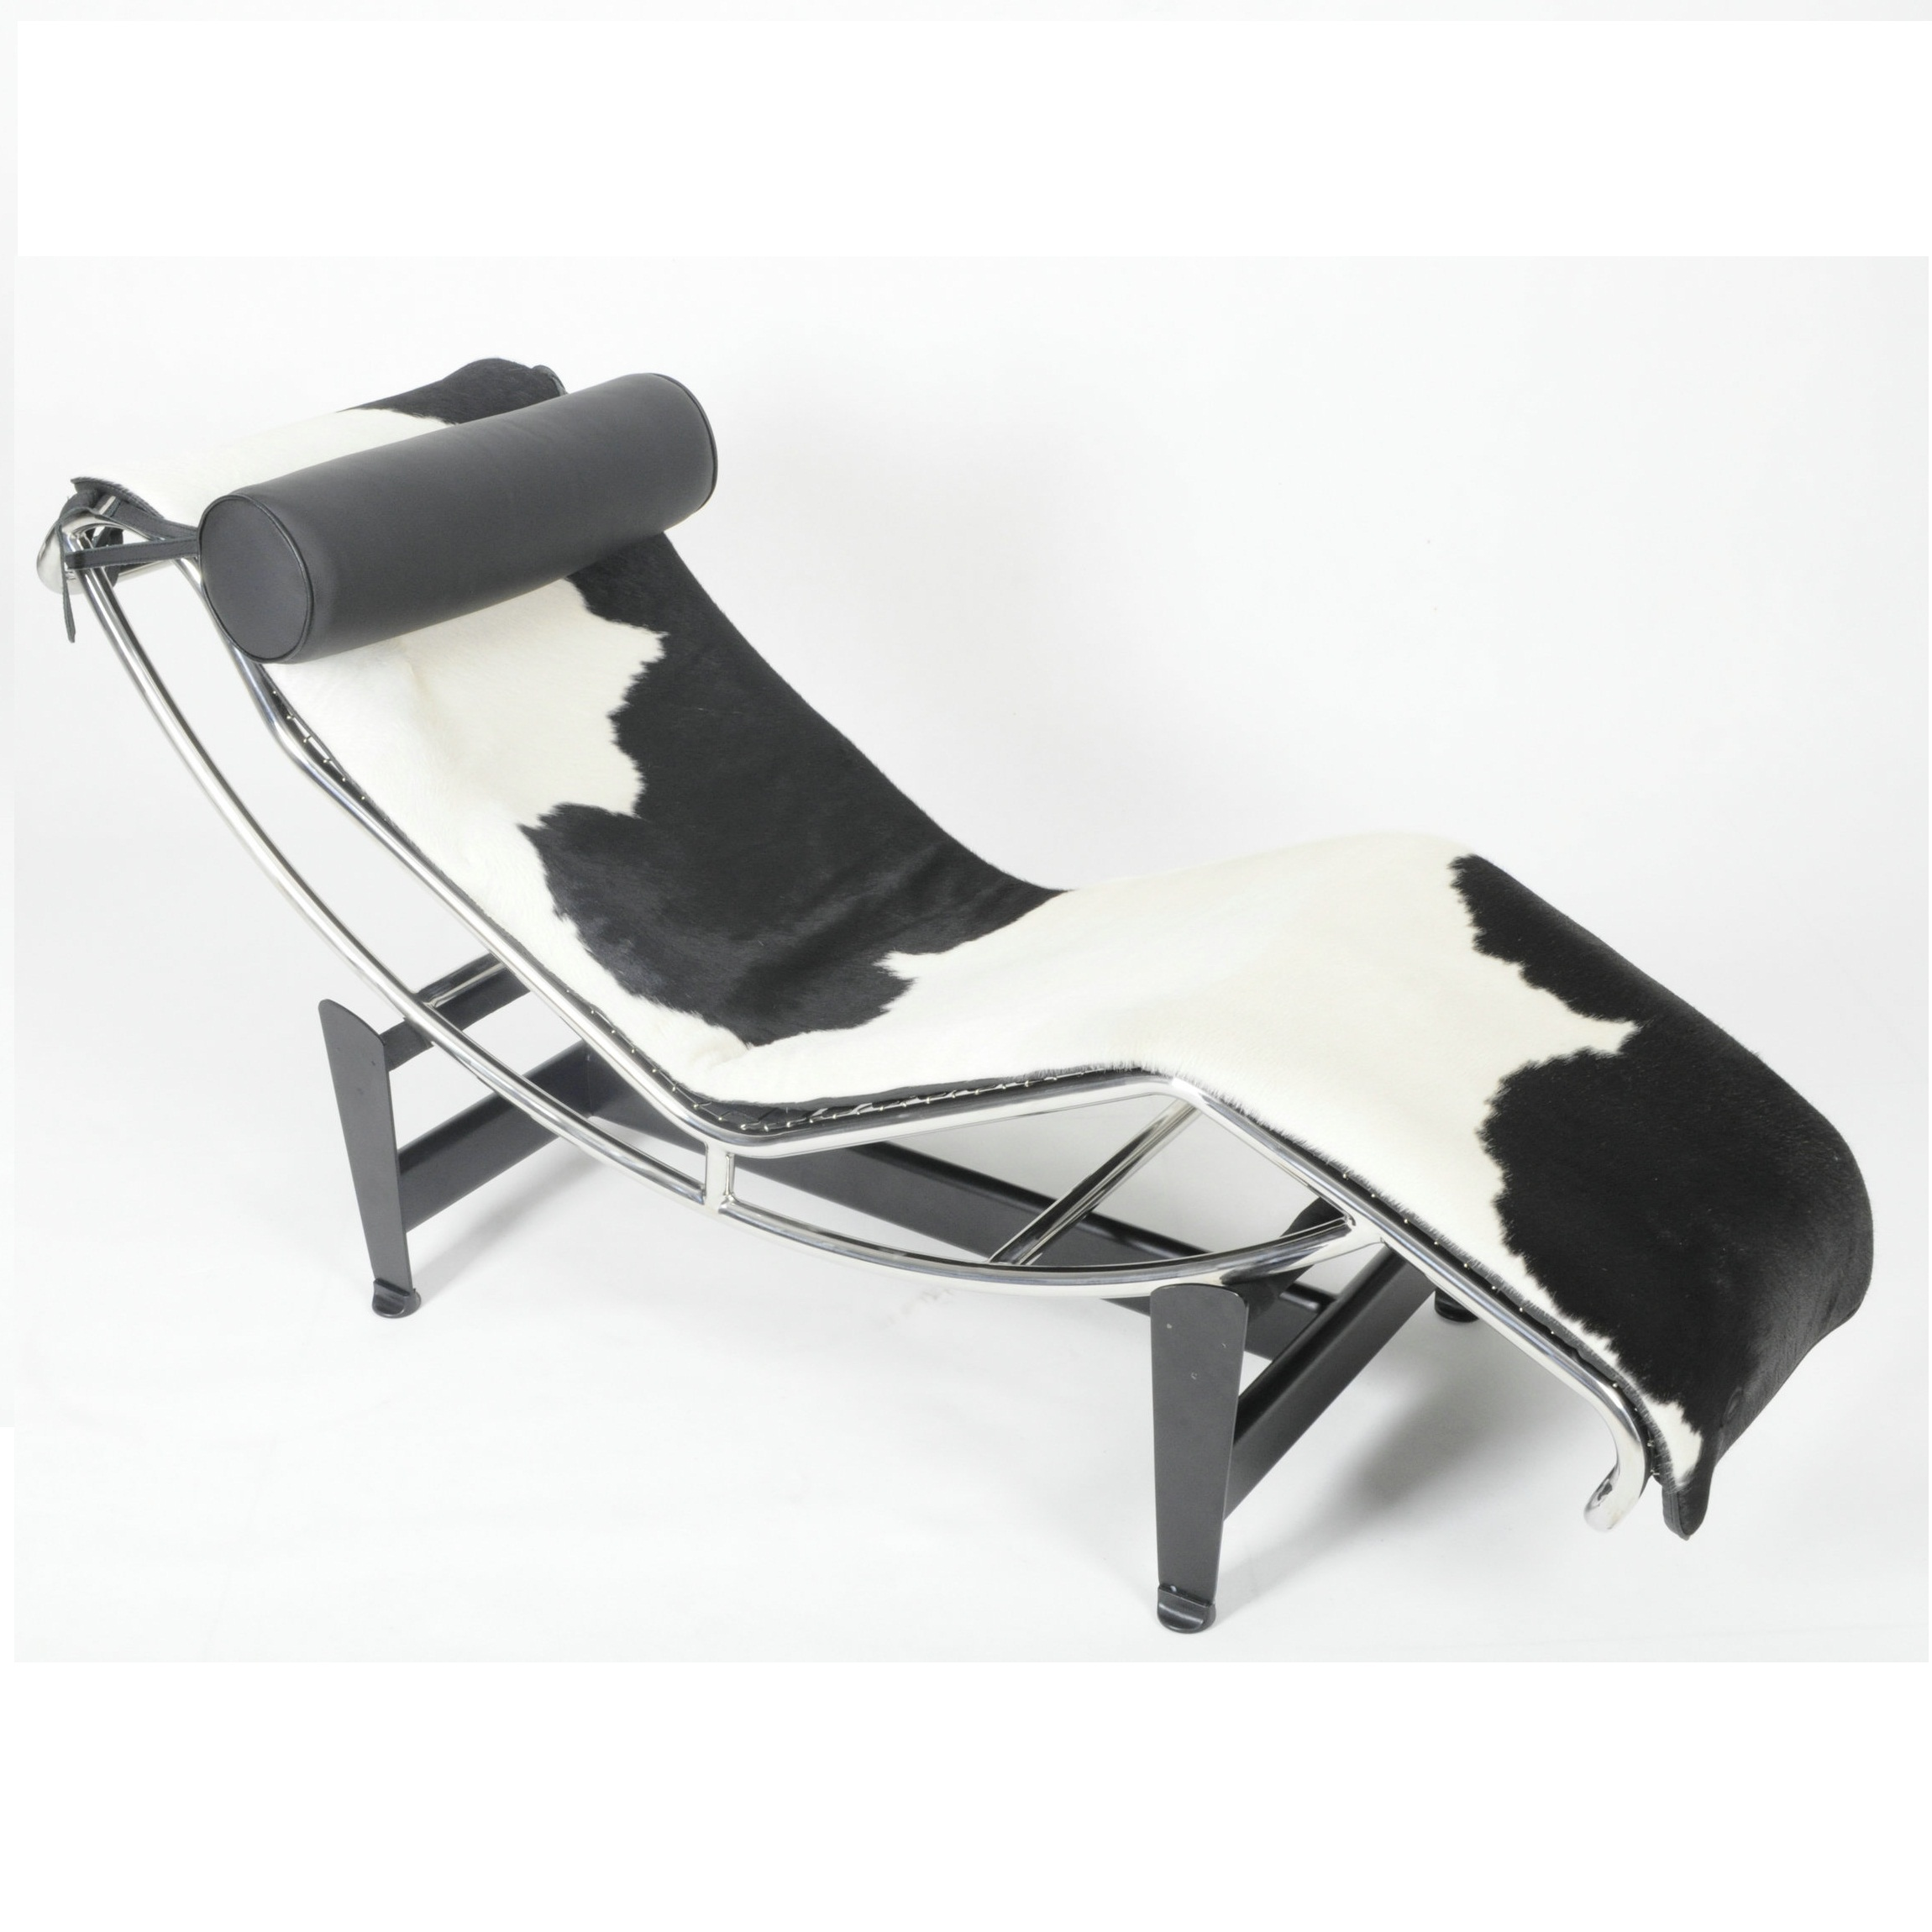 Free Shipping U-BEST Le Corbusier Lc4 Chaise Lounge Chair Cushion,only For Leather Cushion !Black And White Color